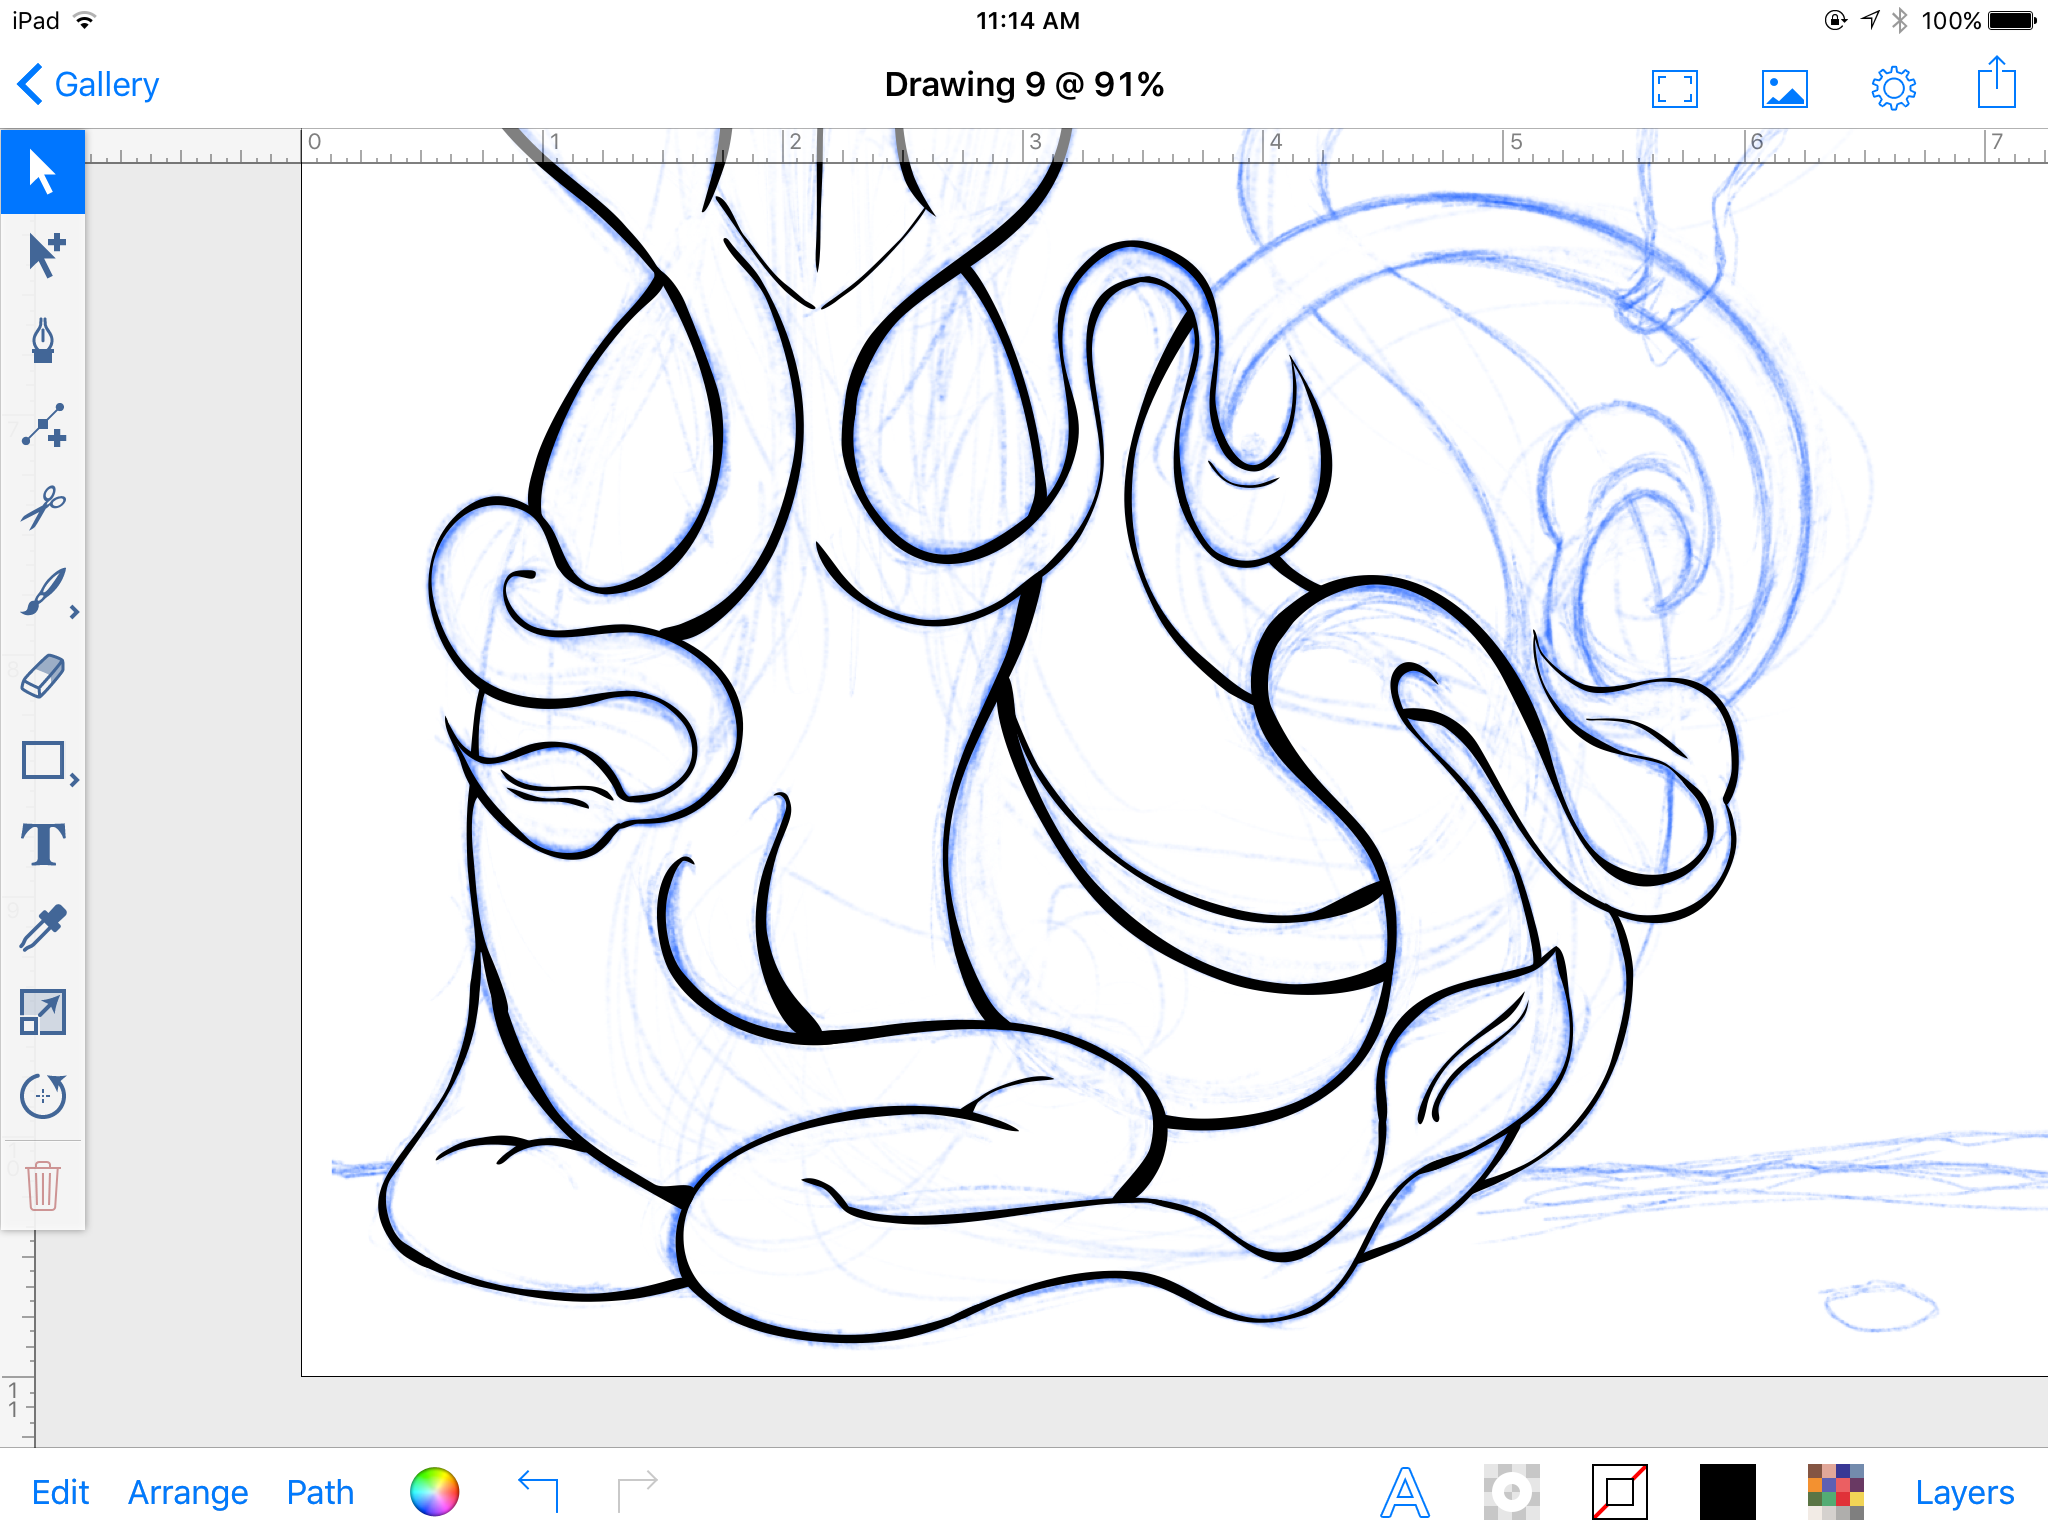 Mermaid tentacles!